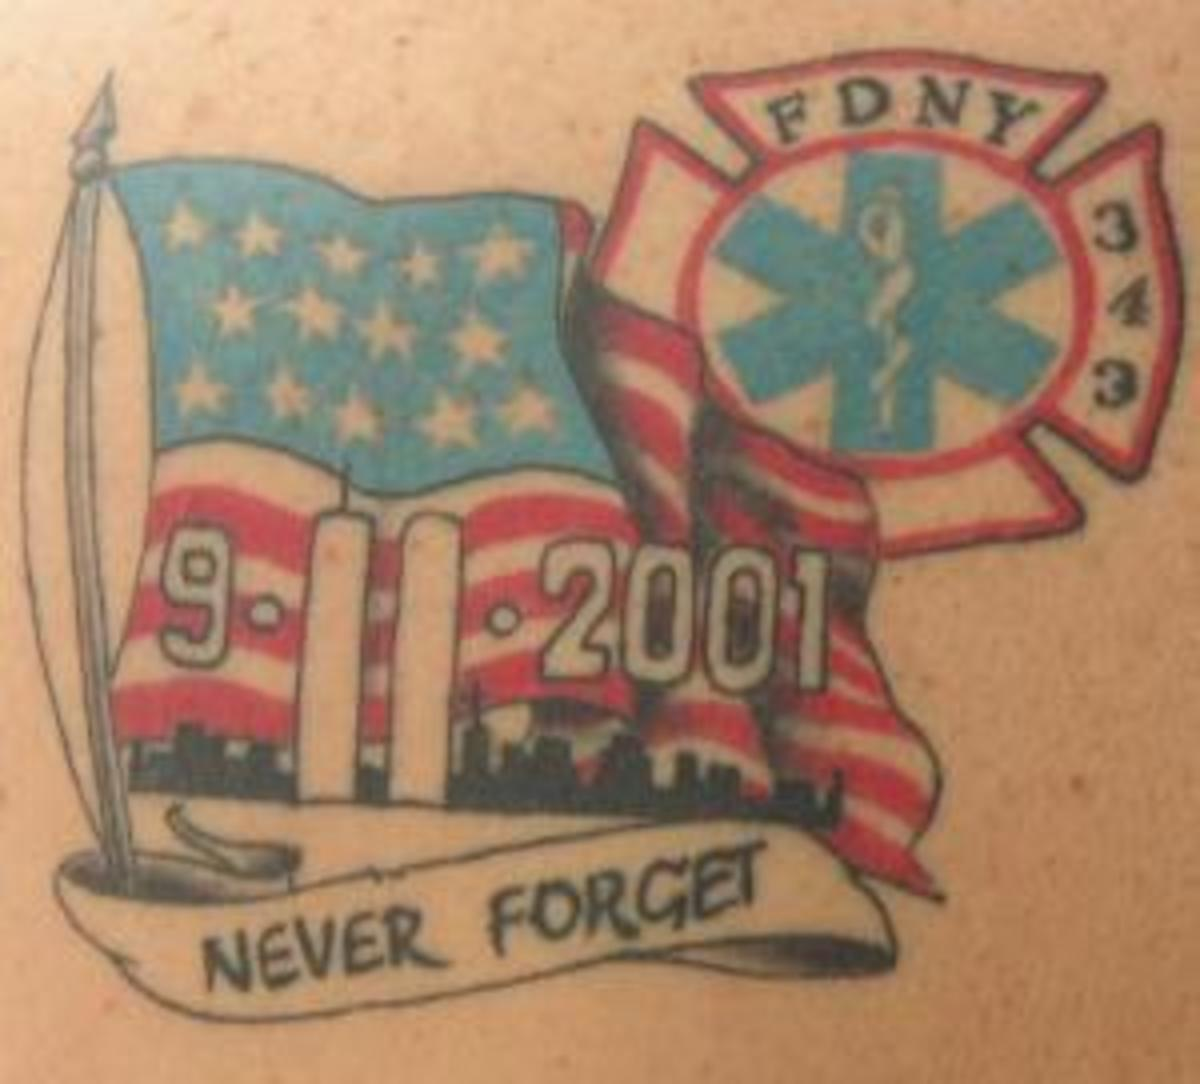 9 11 Memorial Tattoo Designs